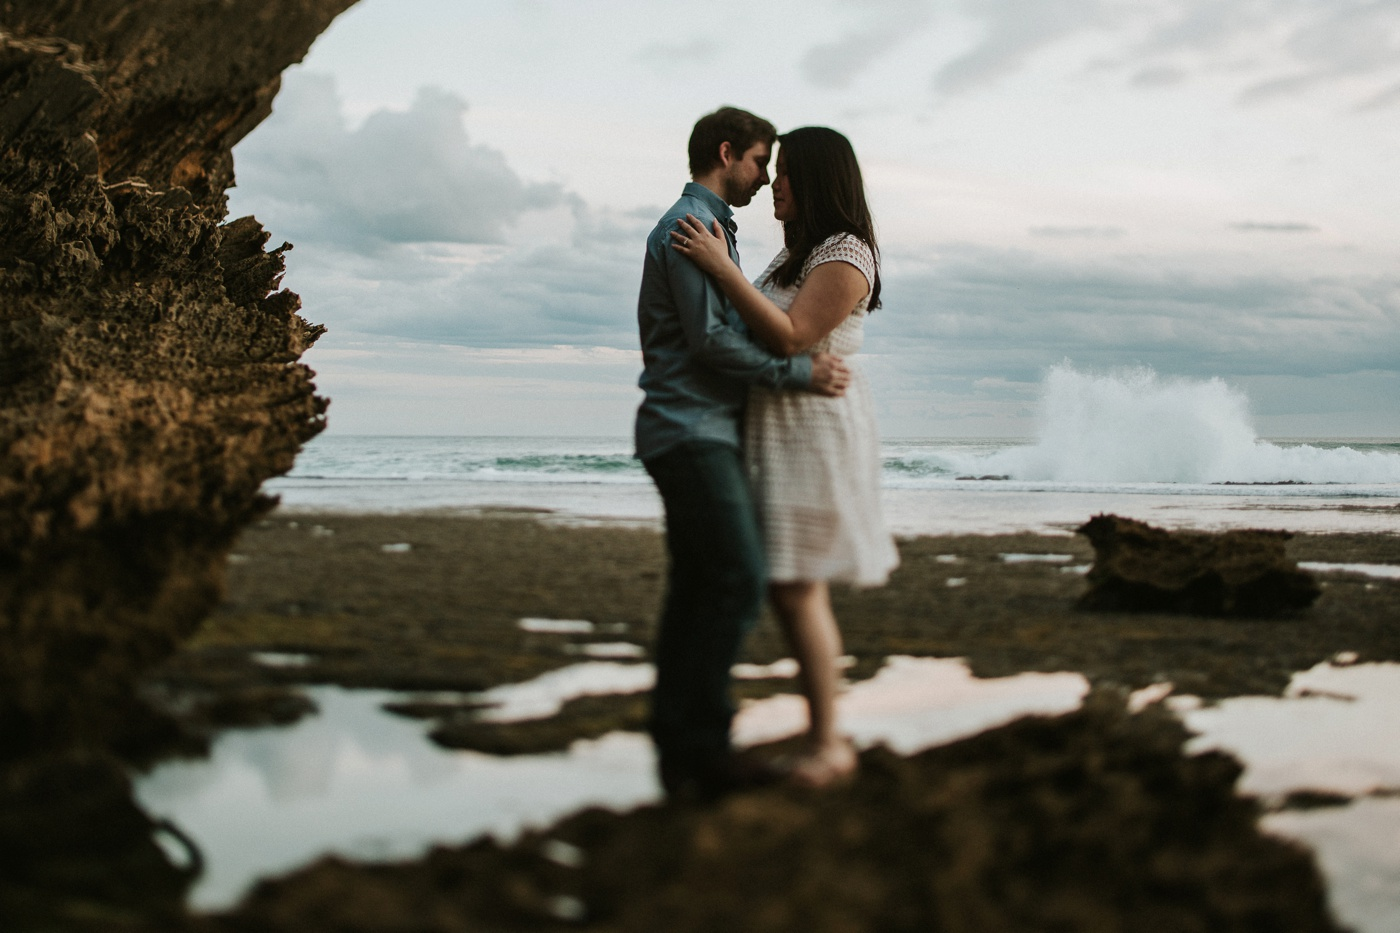 alliedave_mornington-peninsula-back-beach-relaxed-engagement-session_melbourne-candid-wedding-photographer_32